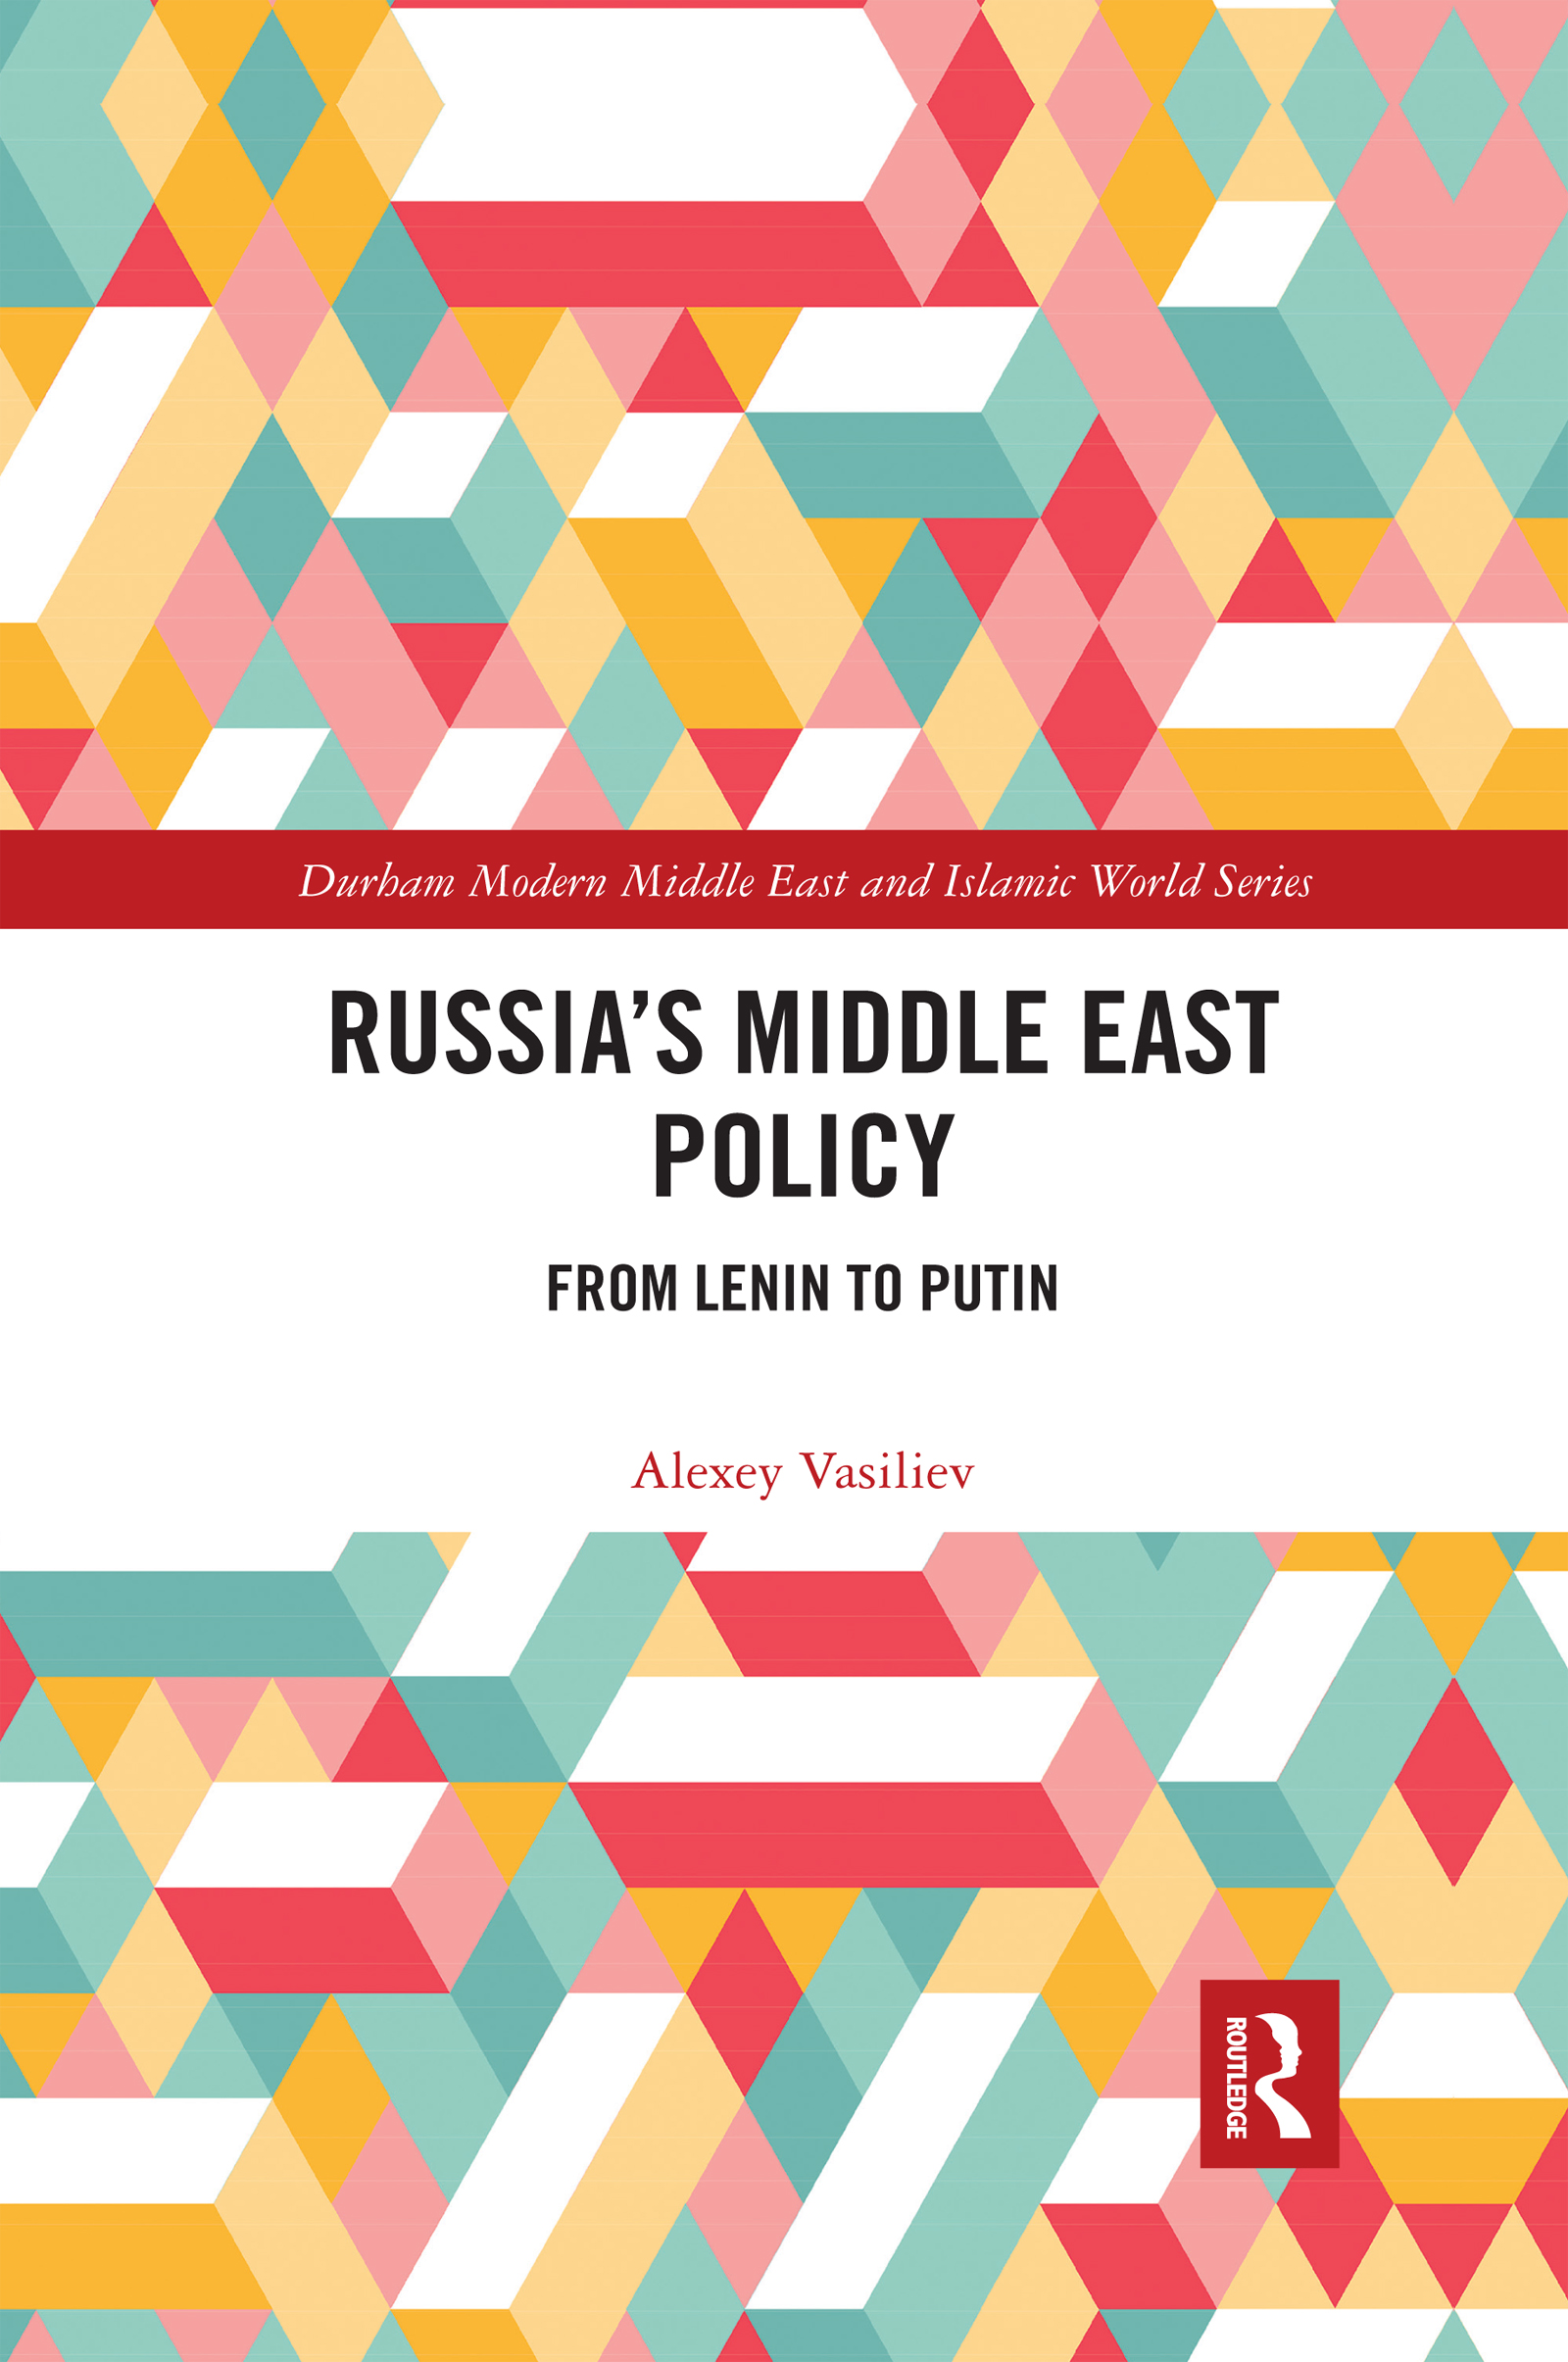 Russia's Middle East Policy